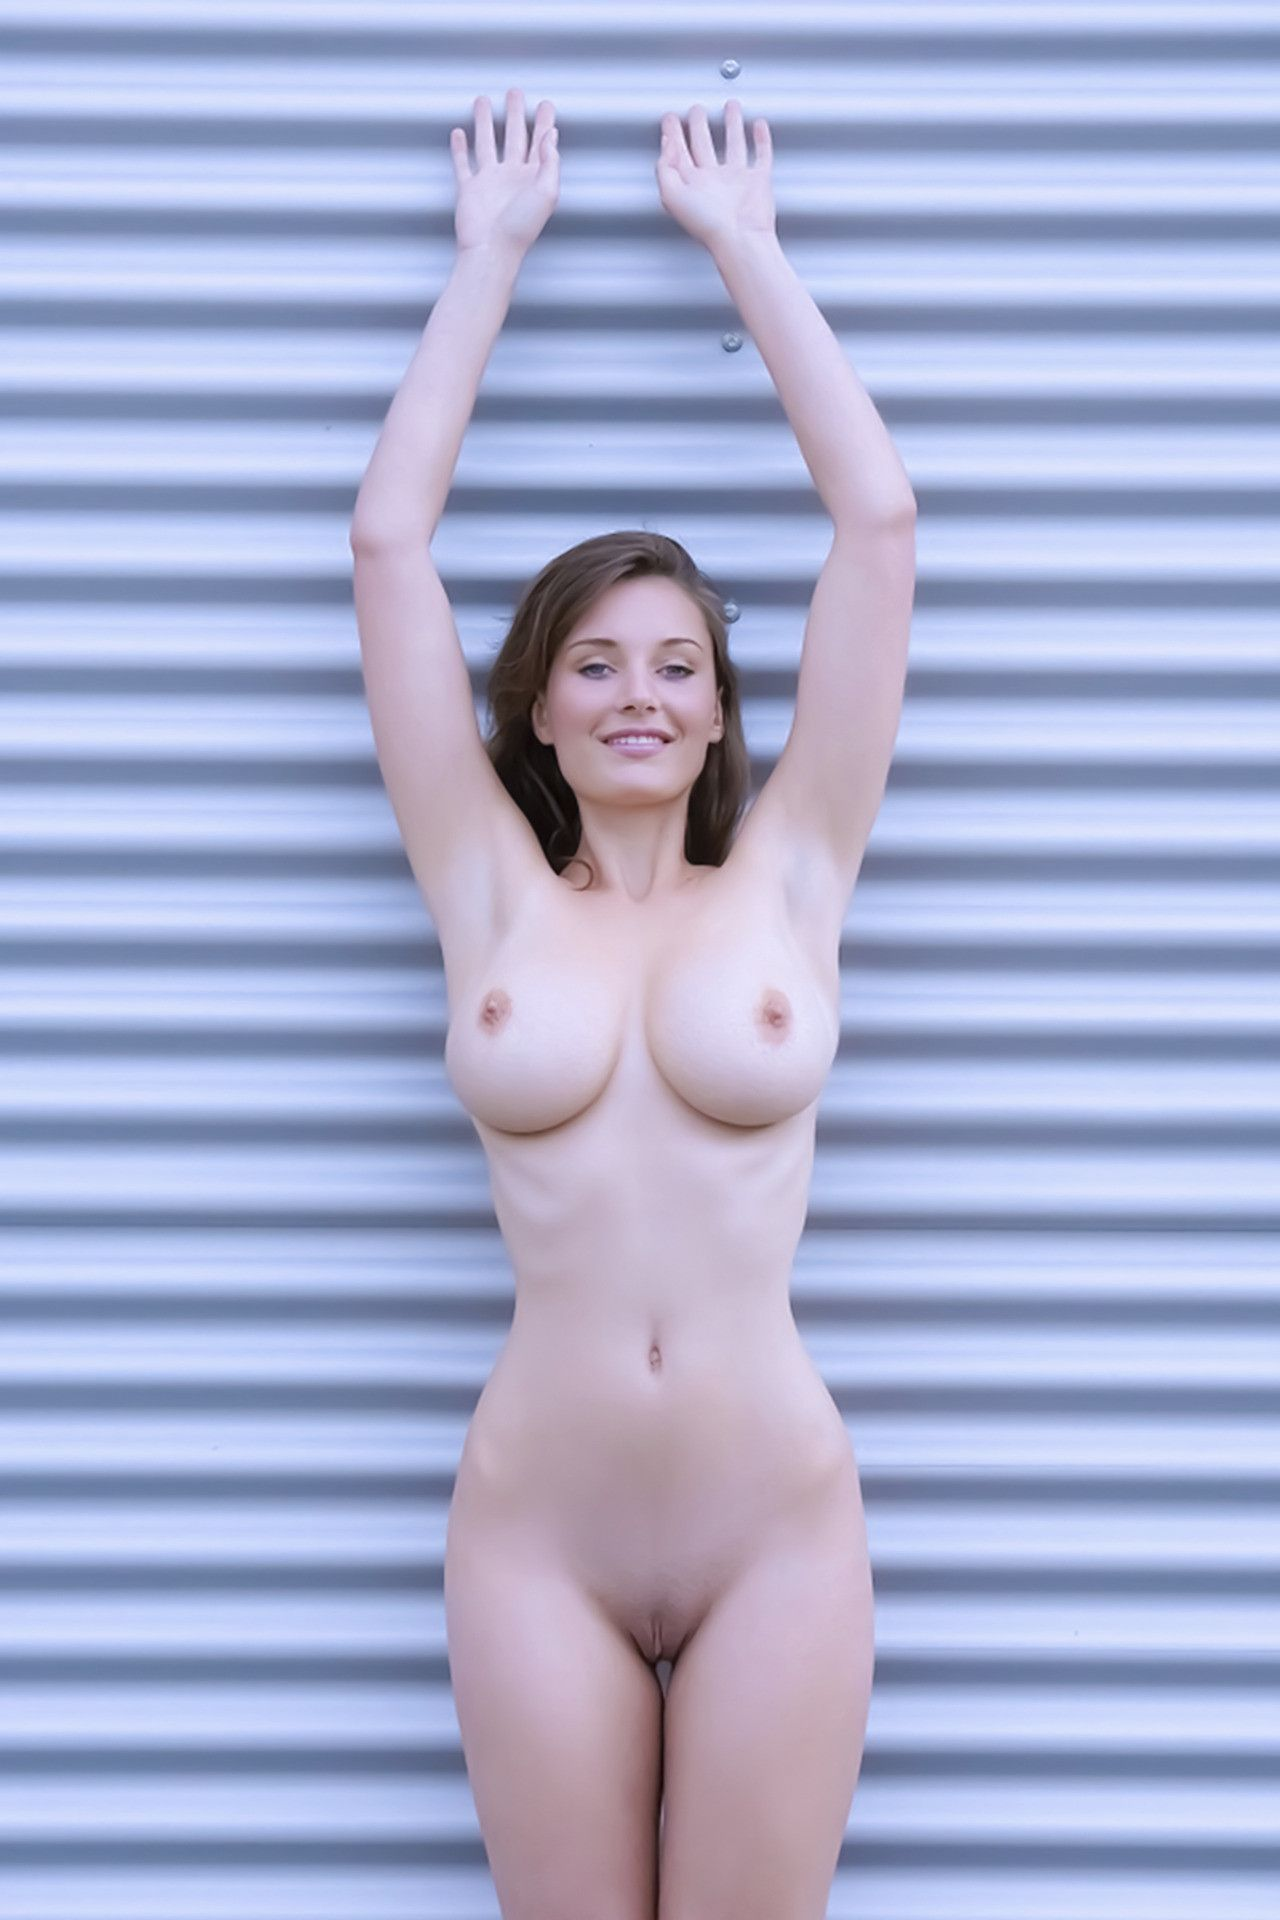 hand-up-naked-girls-before-after-tehragirls-porn